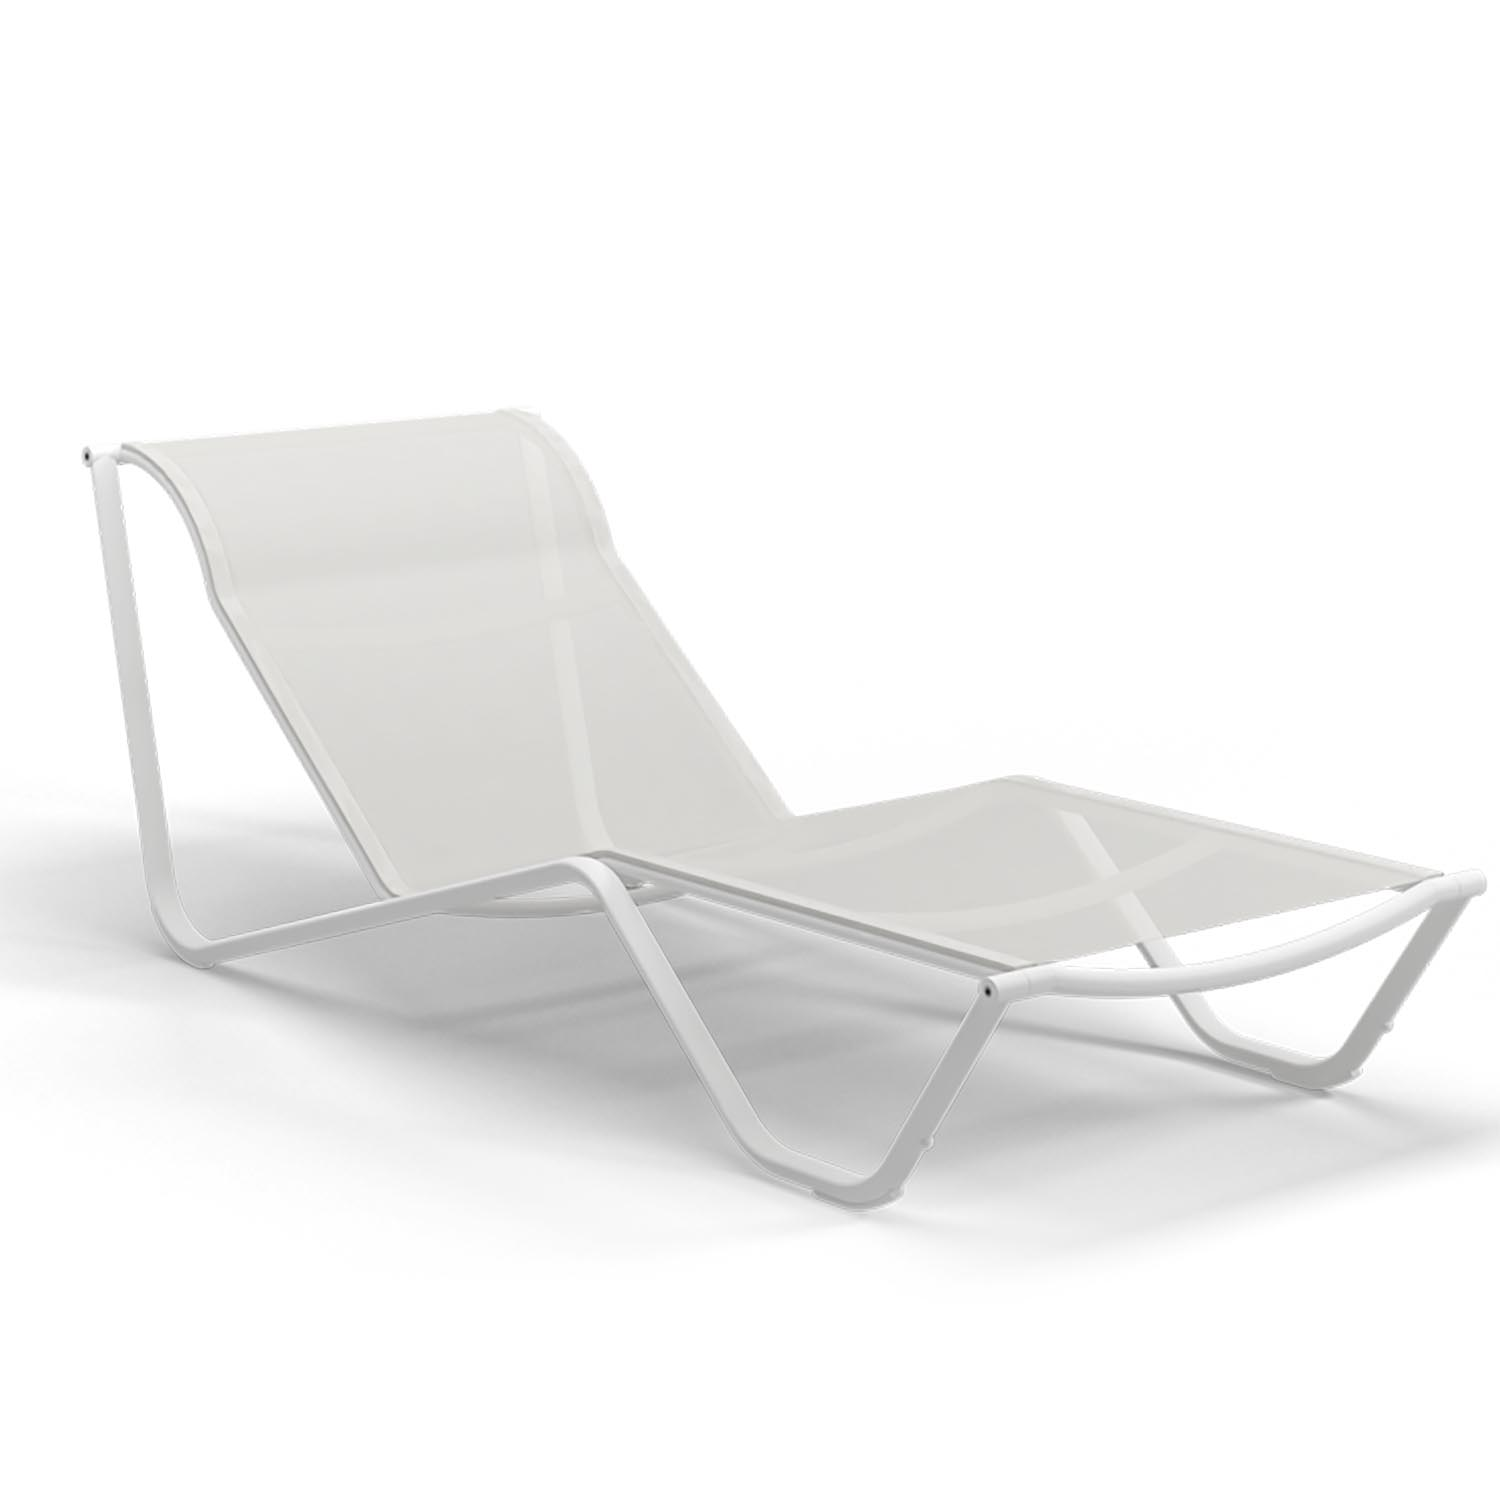 Gloster HELIO Stacking Lounger